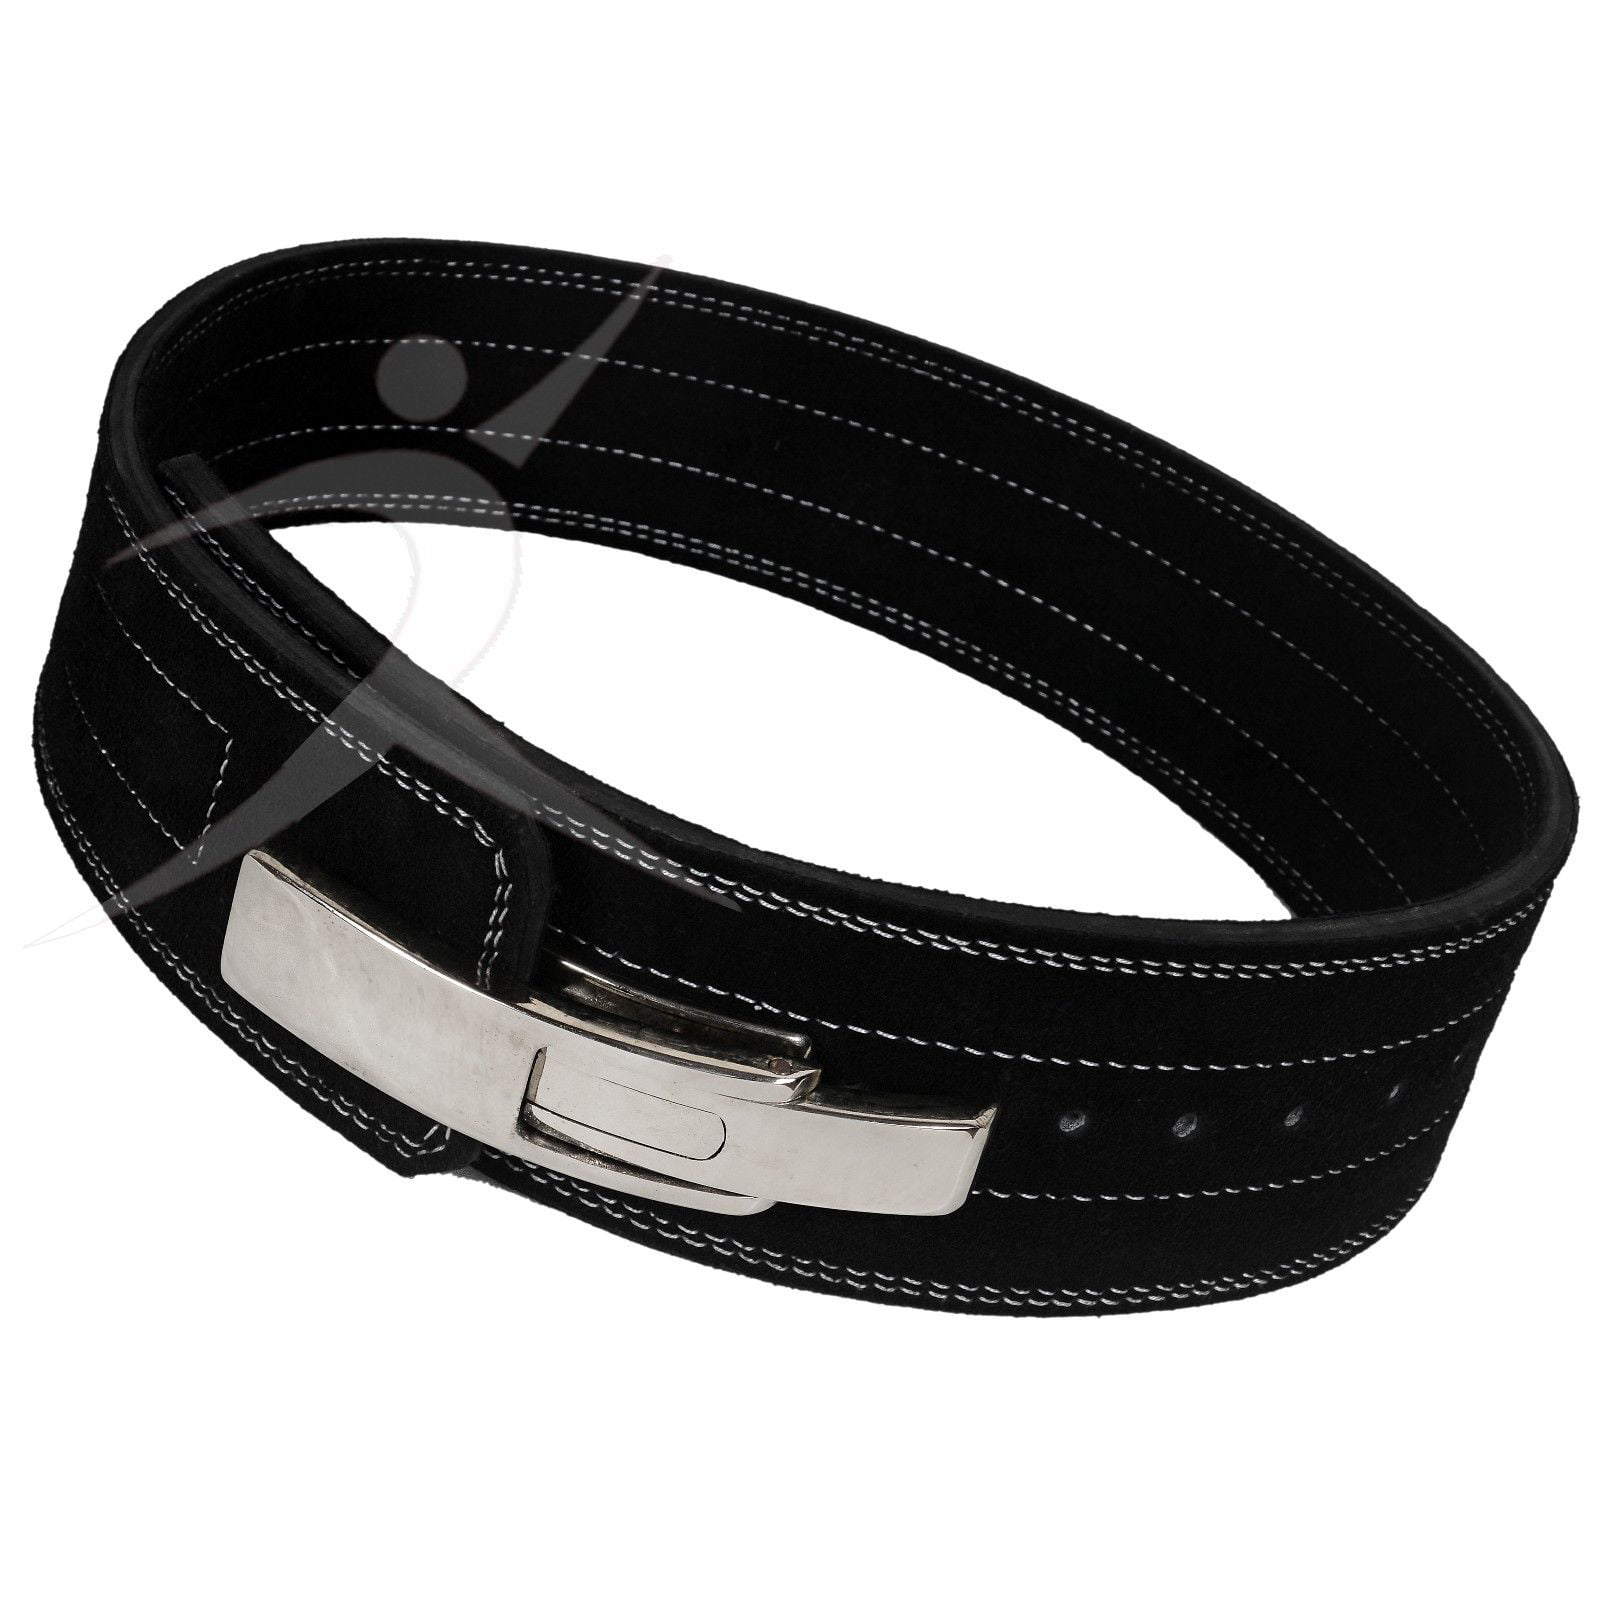 ARD CHAMPS Weight Power Lifting Leather Lever Pro Belt Gym Training Black Xtra Small by